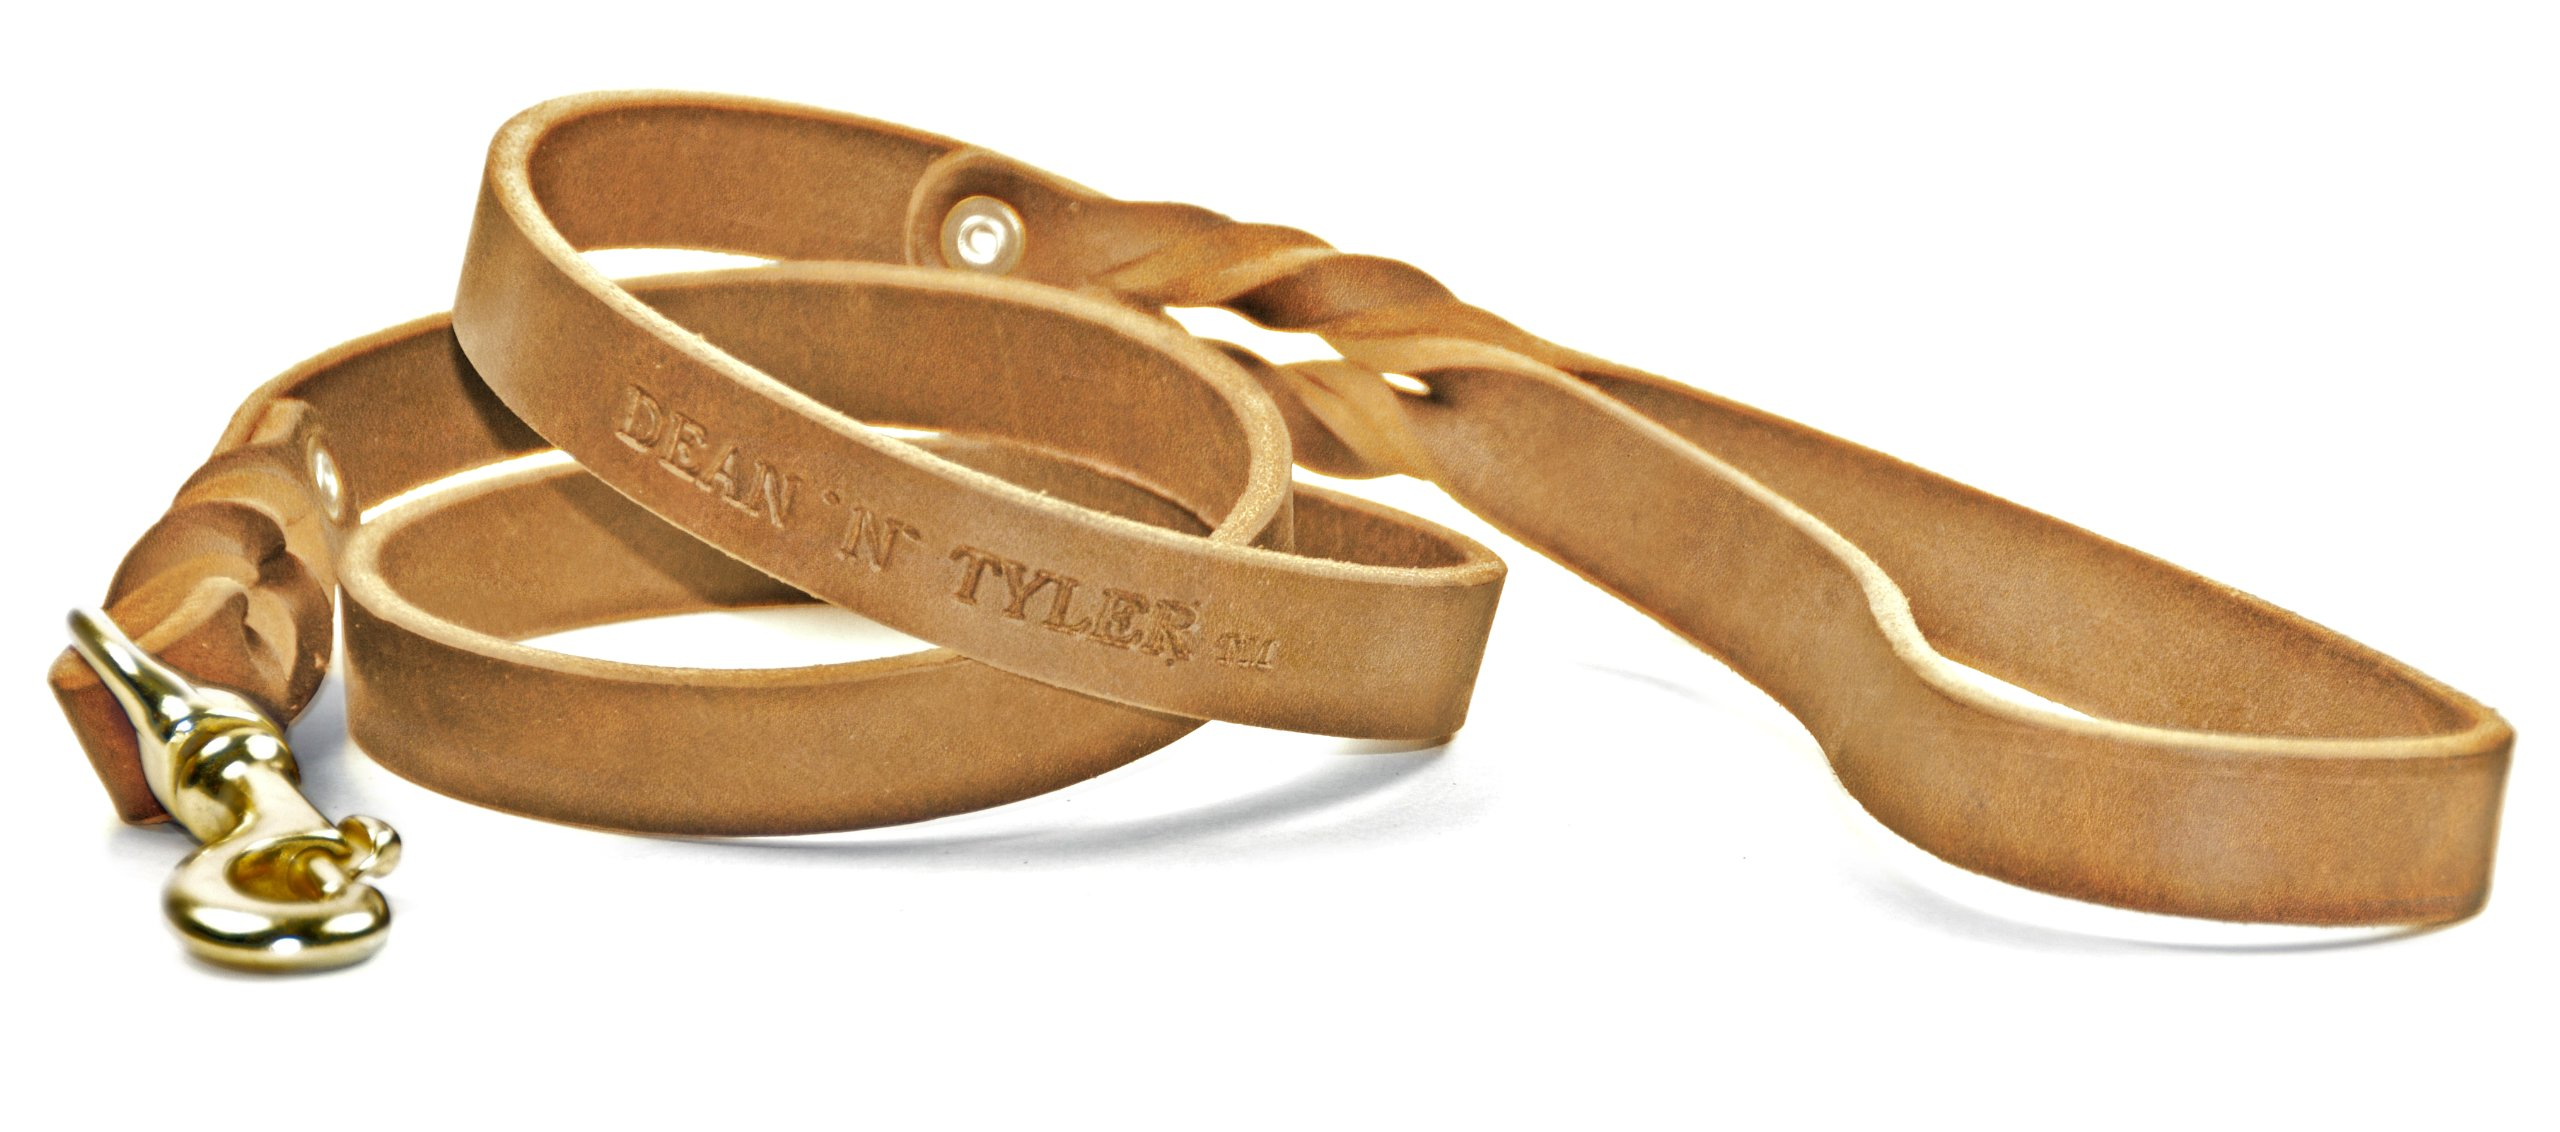 Dean & Tyler Love To Walk Dog Leash with Full Grain Leather and Solid Brass Hardware, 4-Feet by 3/4-Inch, Tan